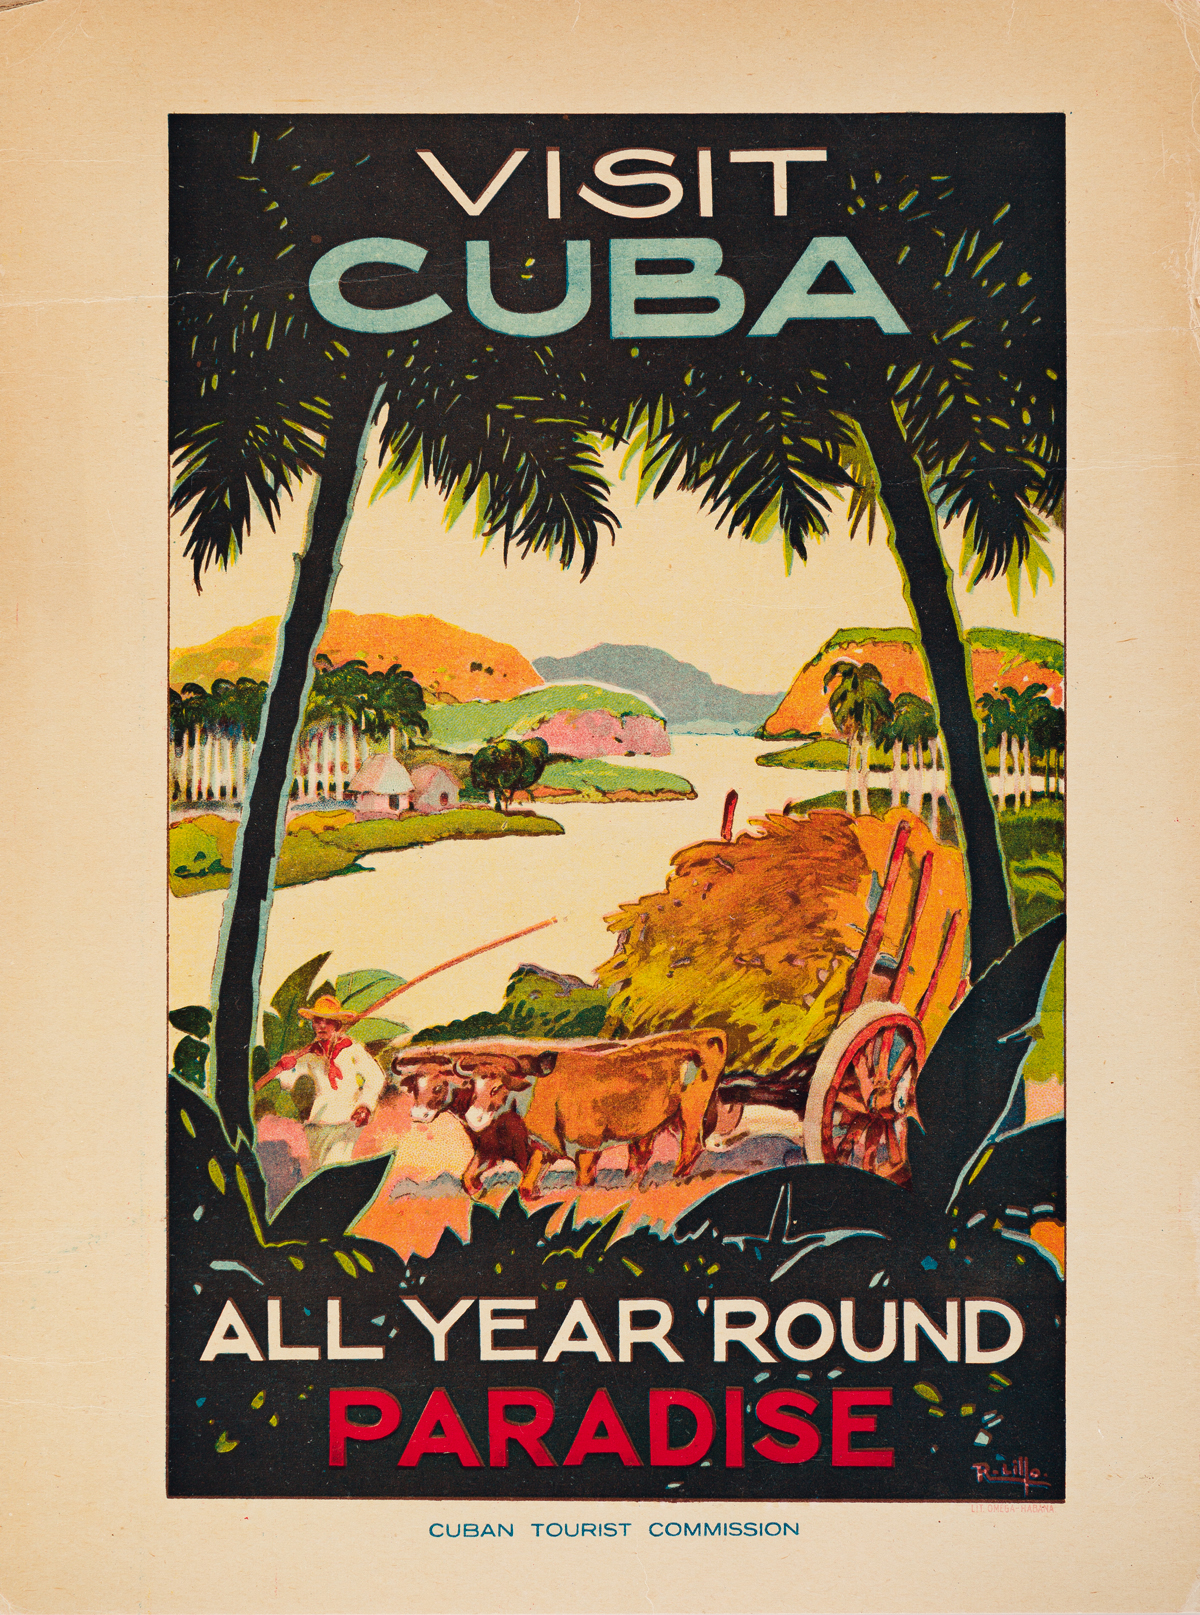 R. Lillo (Dates Unknown).  VISIT CUBA / ALL YEAR ROUND PARADISE. Small format poster. Circa 1938.